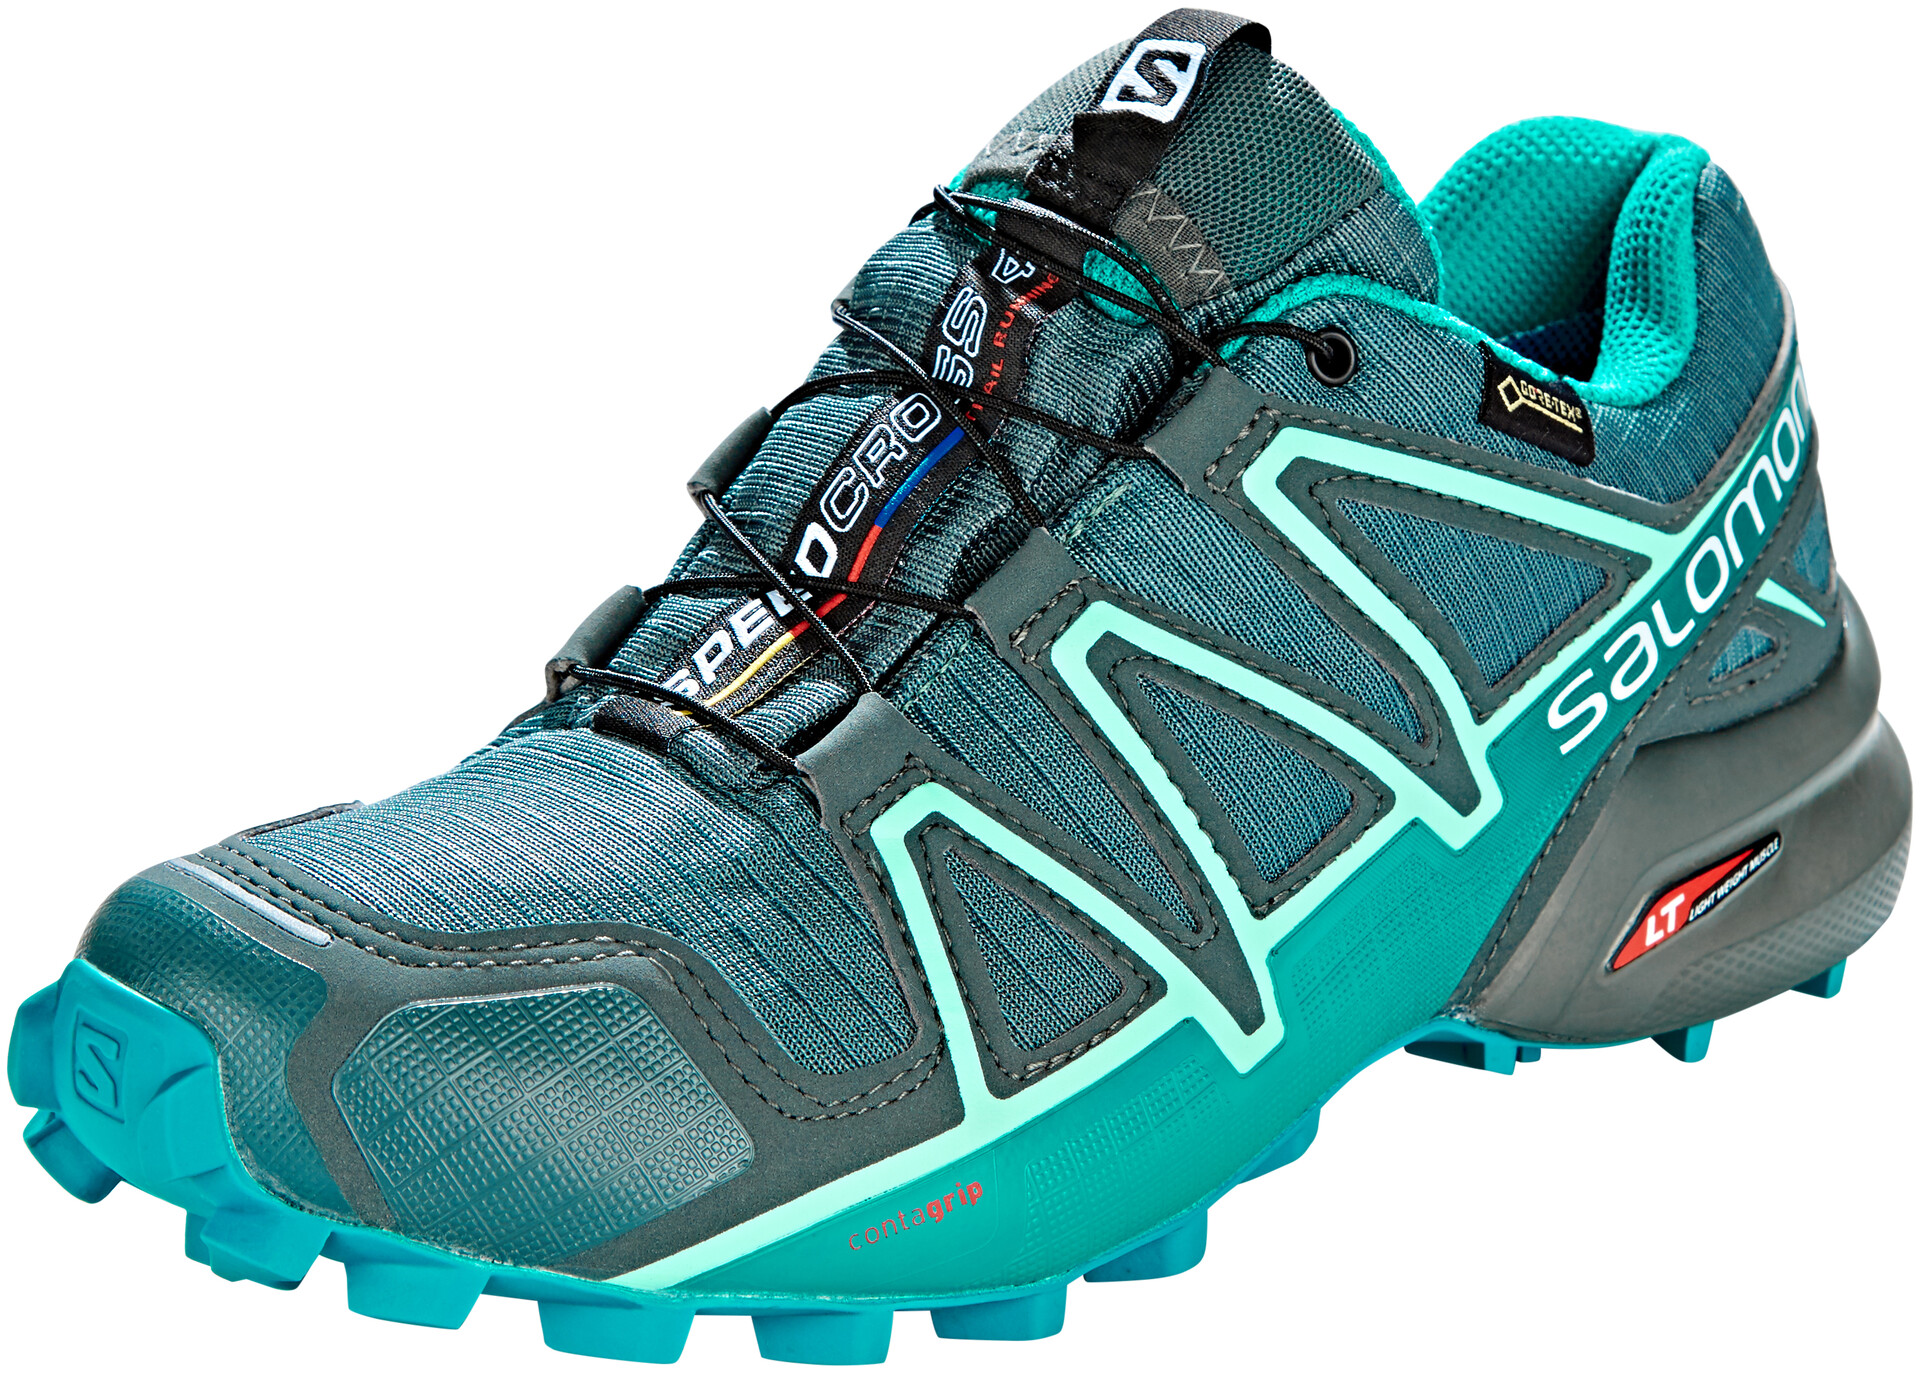 Salomon Speedcross 4 GTX Shoes Dame balsam greentropical greenbeach glass